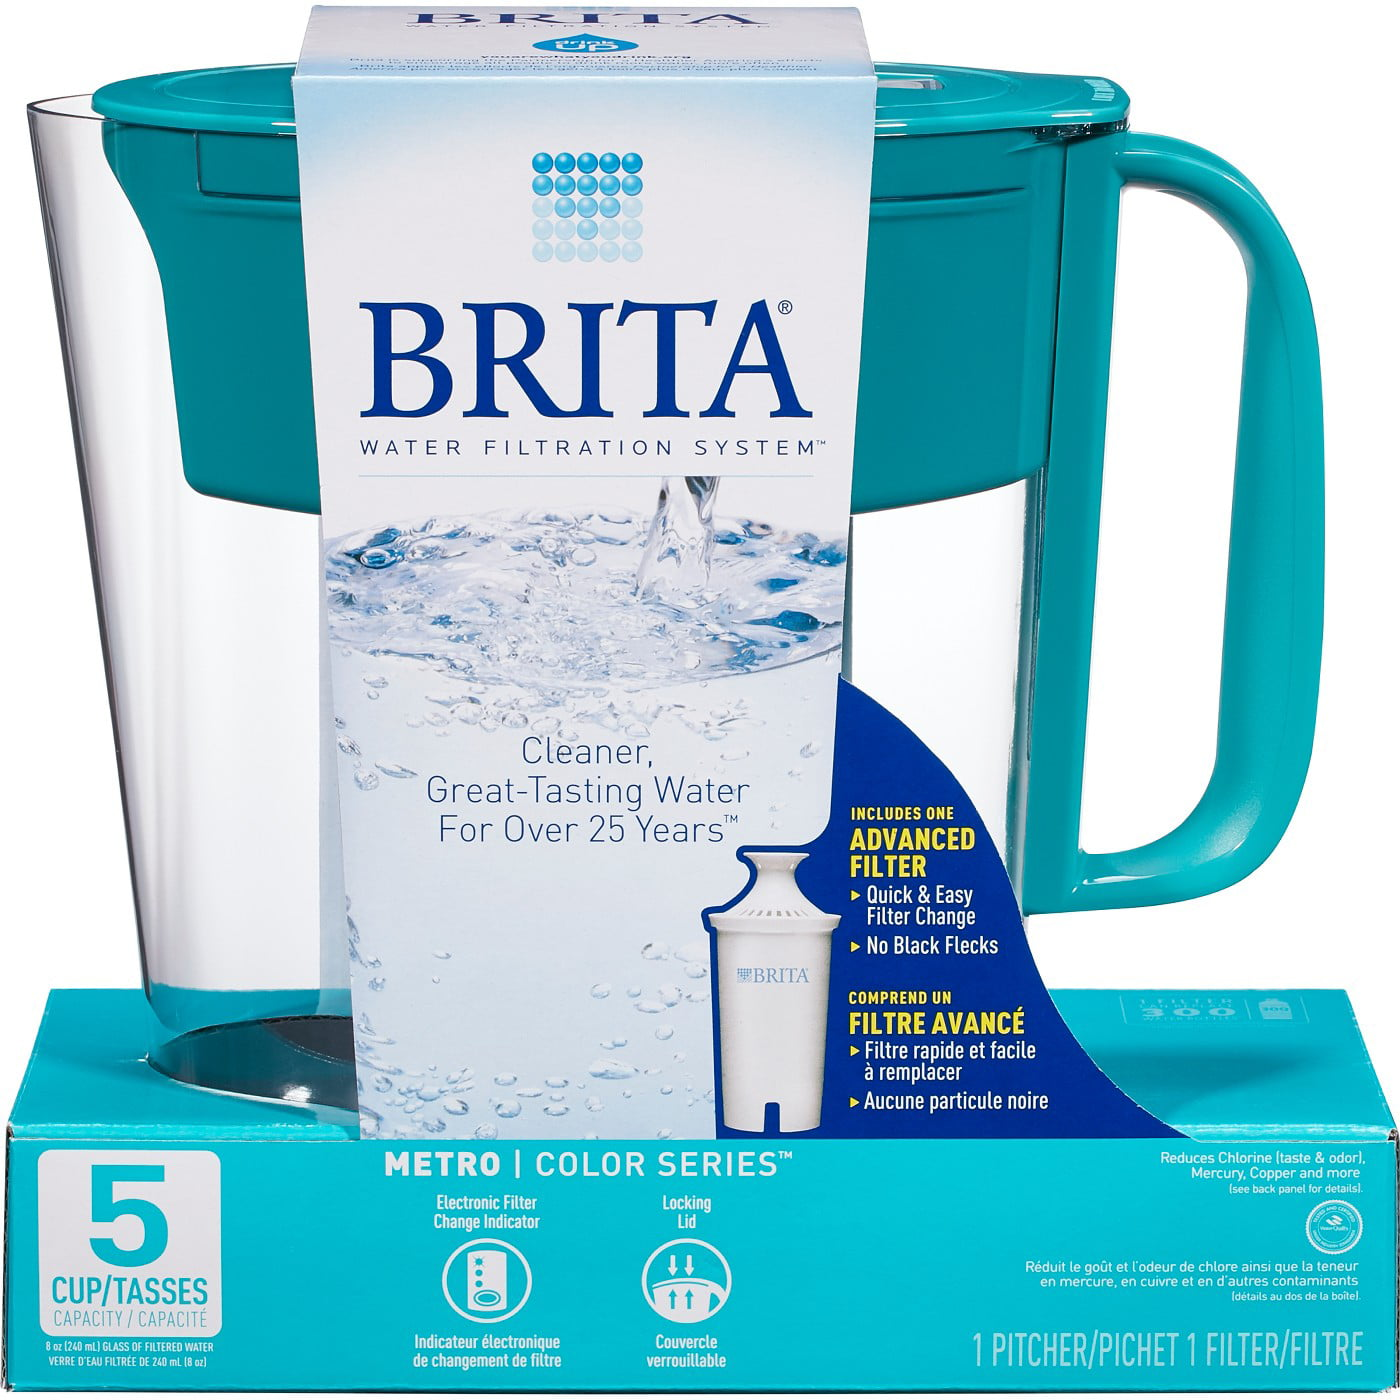 Brita Metro 5-Cup Water Filtration Pitcher - Turquoise